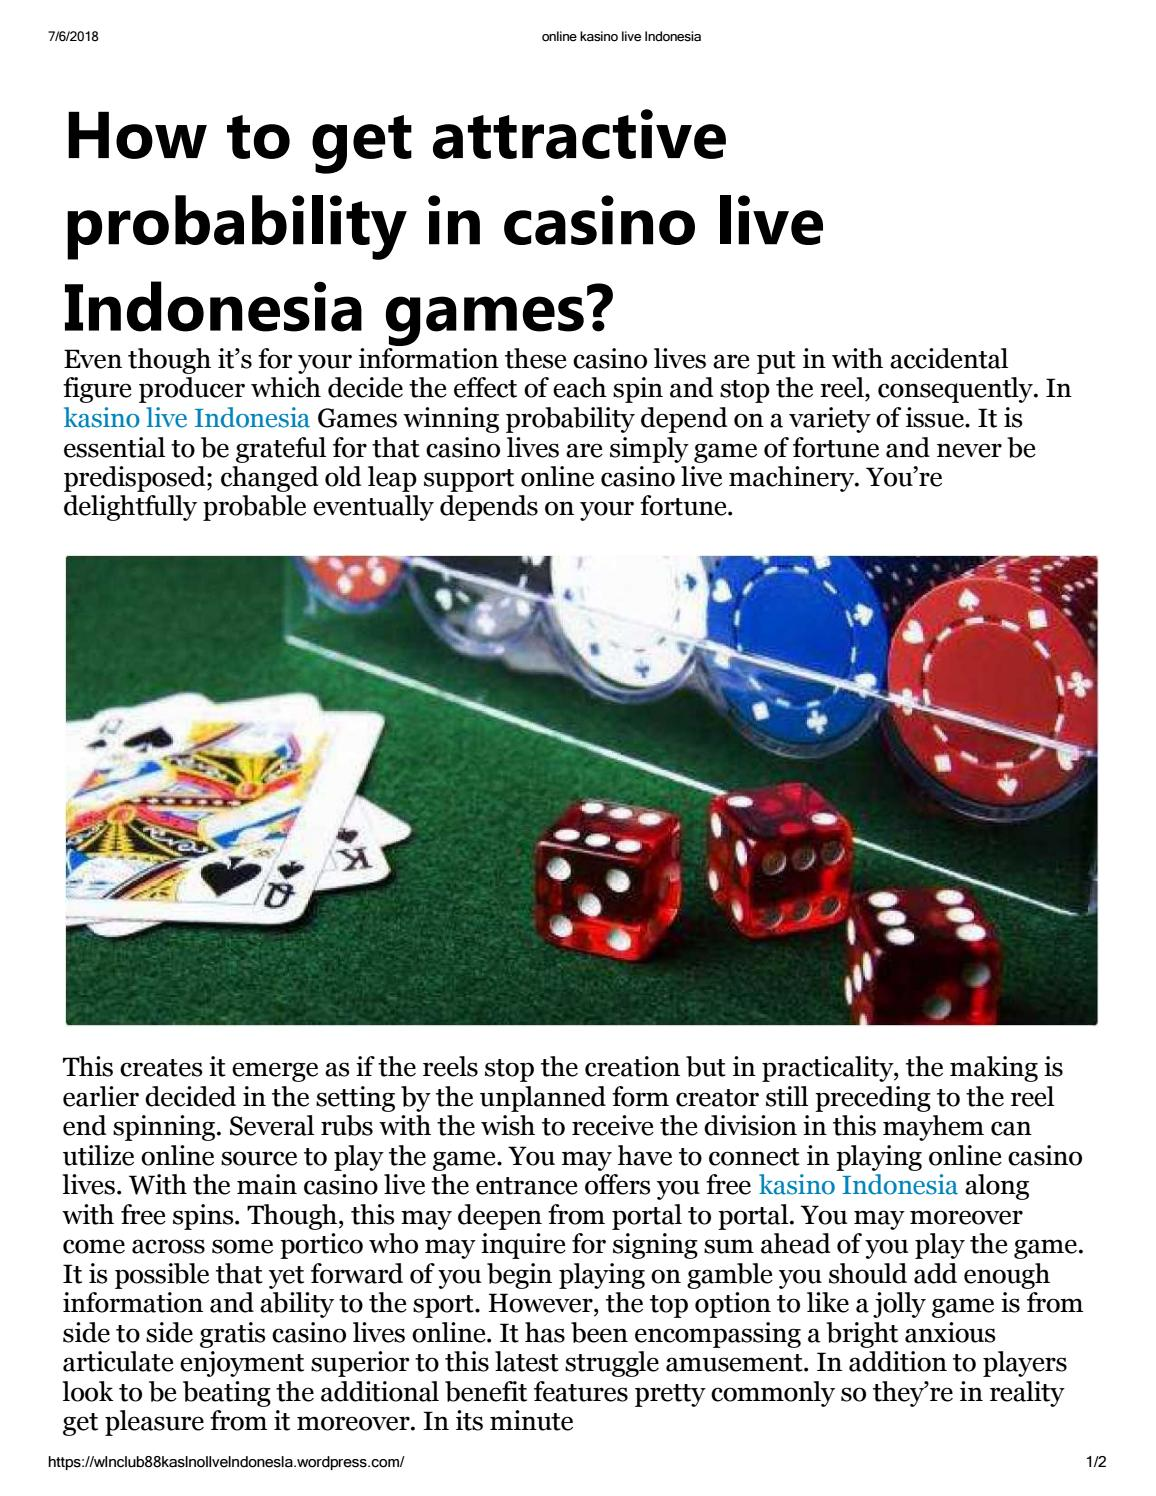 How To Get Attractive Probability In Casino Live Indonesia Games By Winclub88 Indonesia Issuu